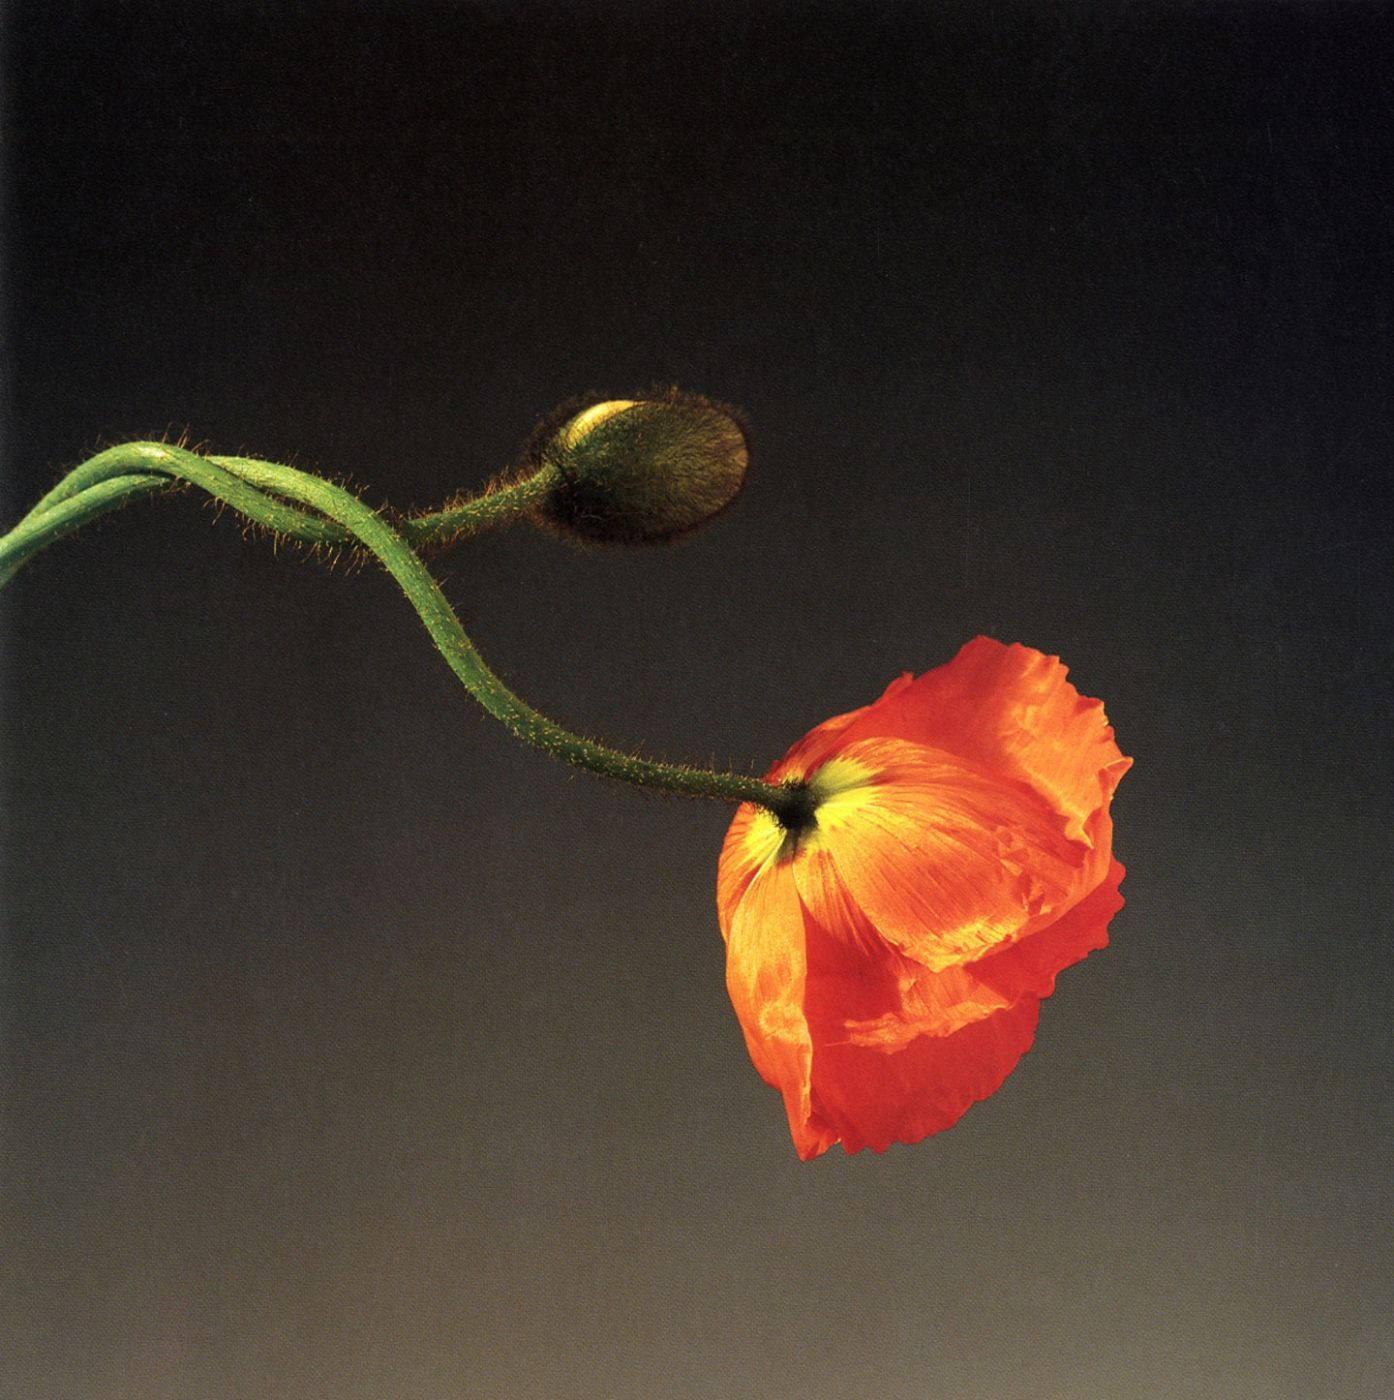 Robert Mapplethorpe (Whitney Museum of American Art)